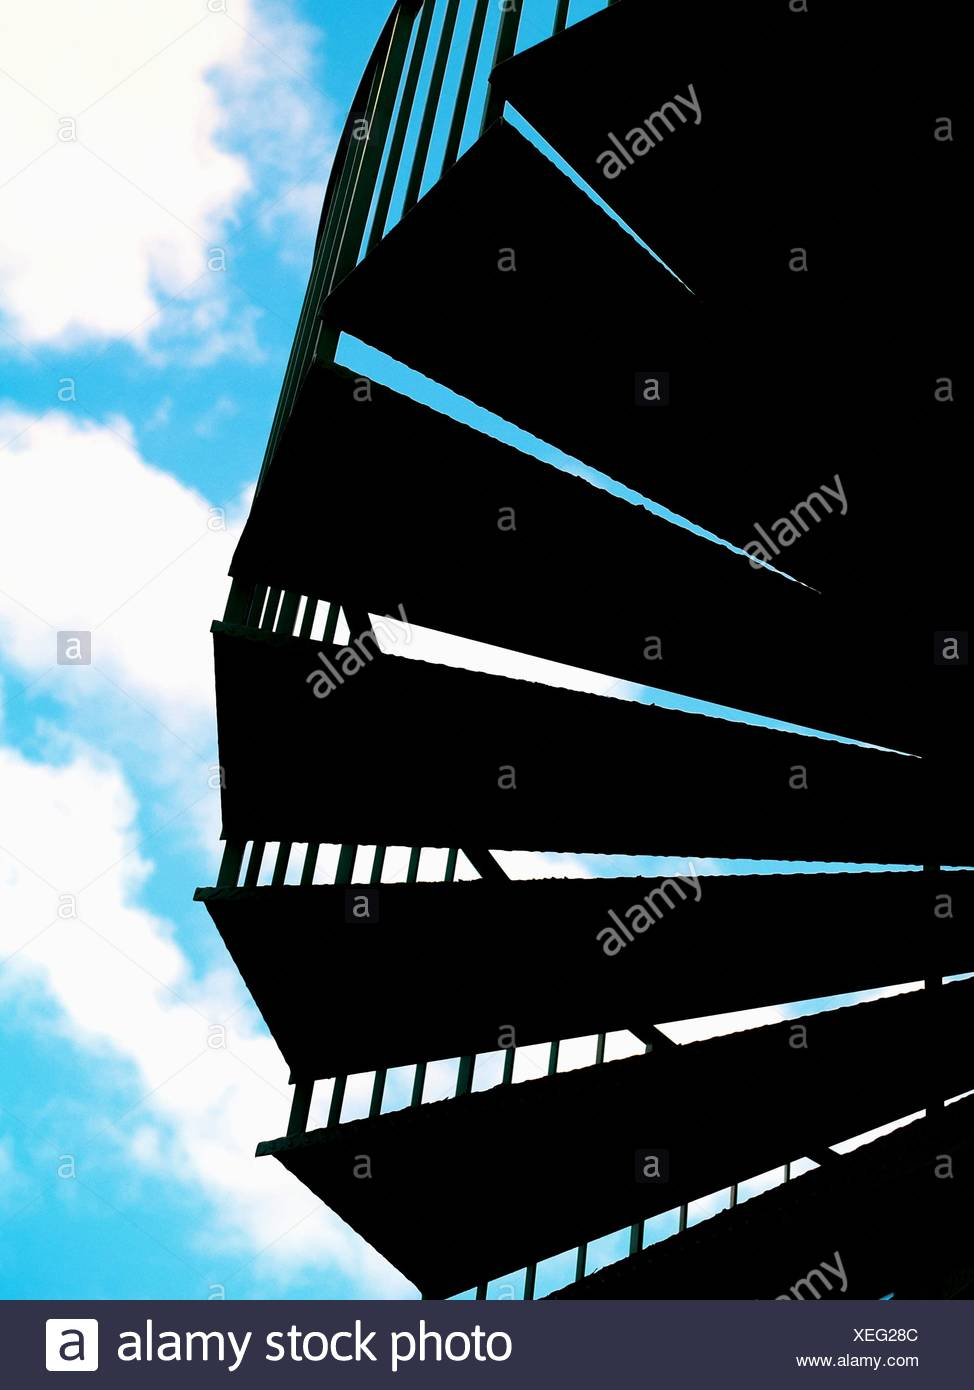 Low Angle View Of Silhouette Steps Against Cloudy Sky - Stock Image